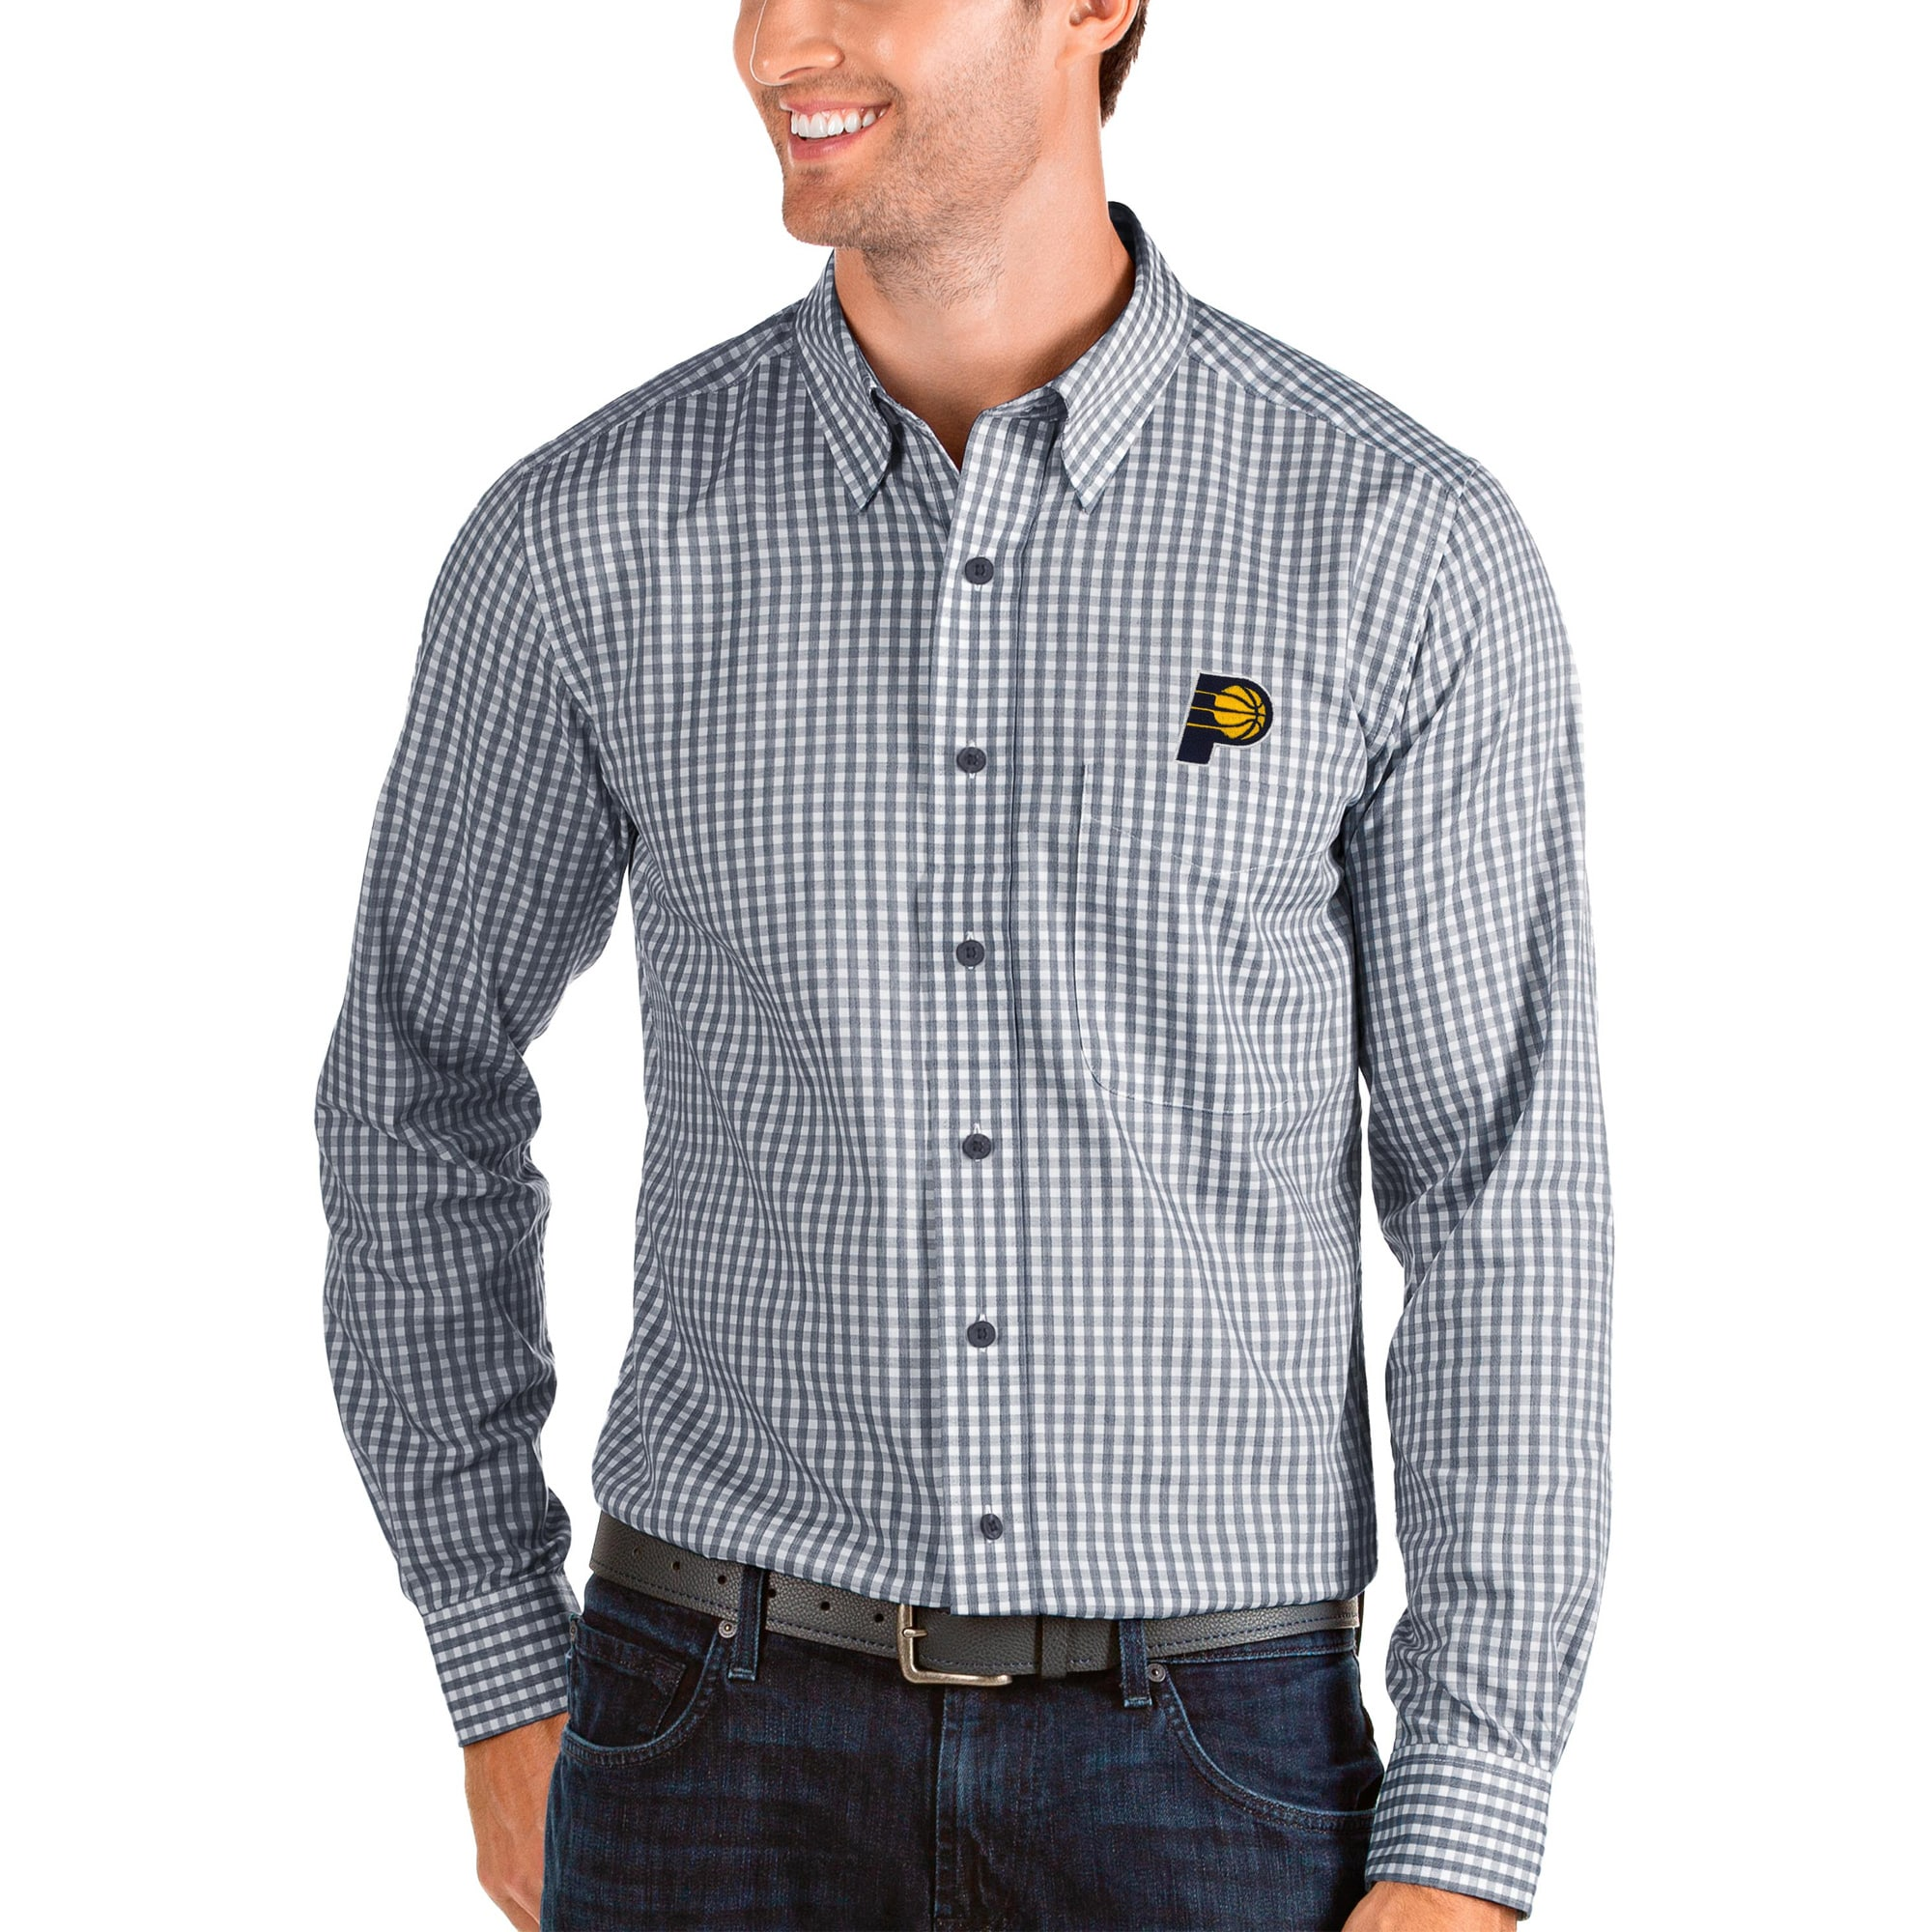 Indiana Pacers Antigua Structure Long Sleeve Button-Up Shirt - Navy/White